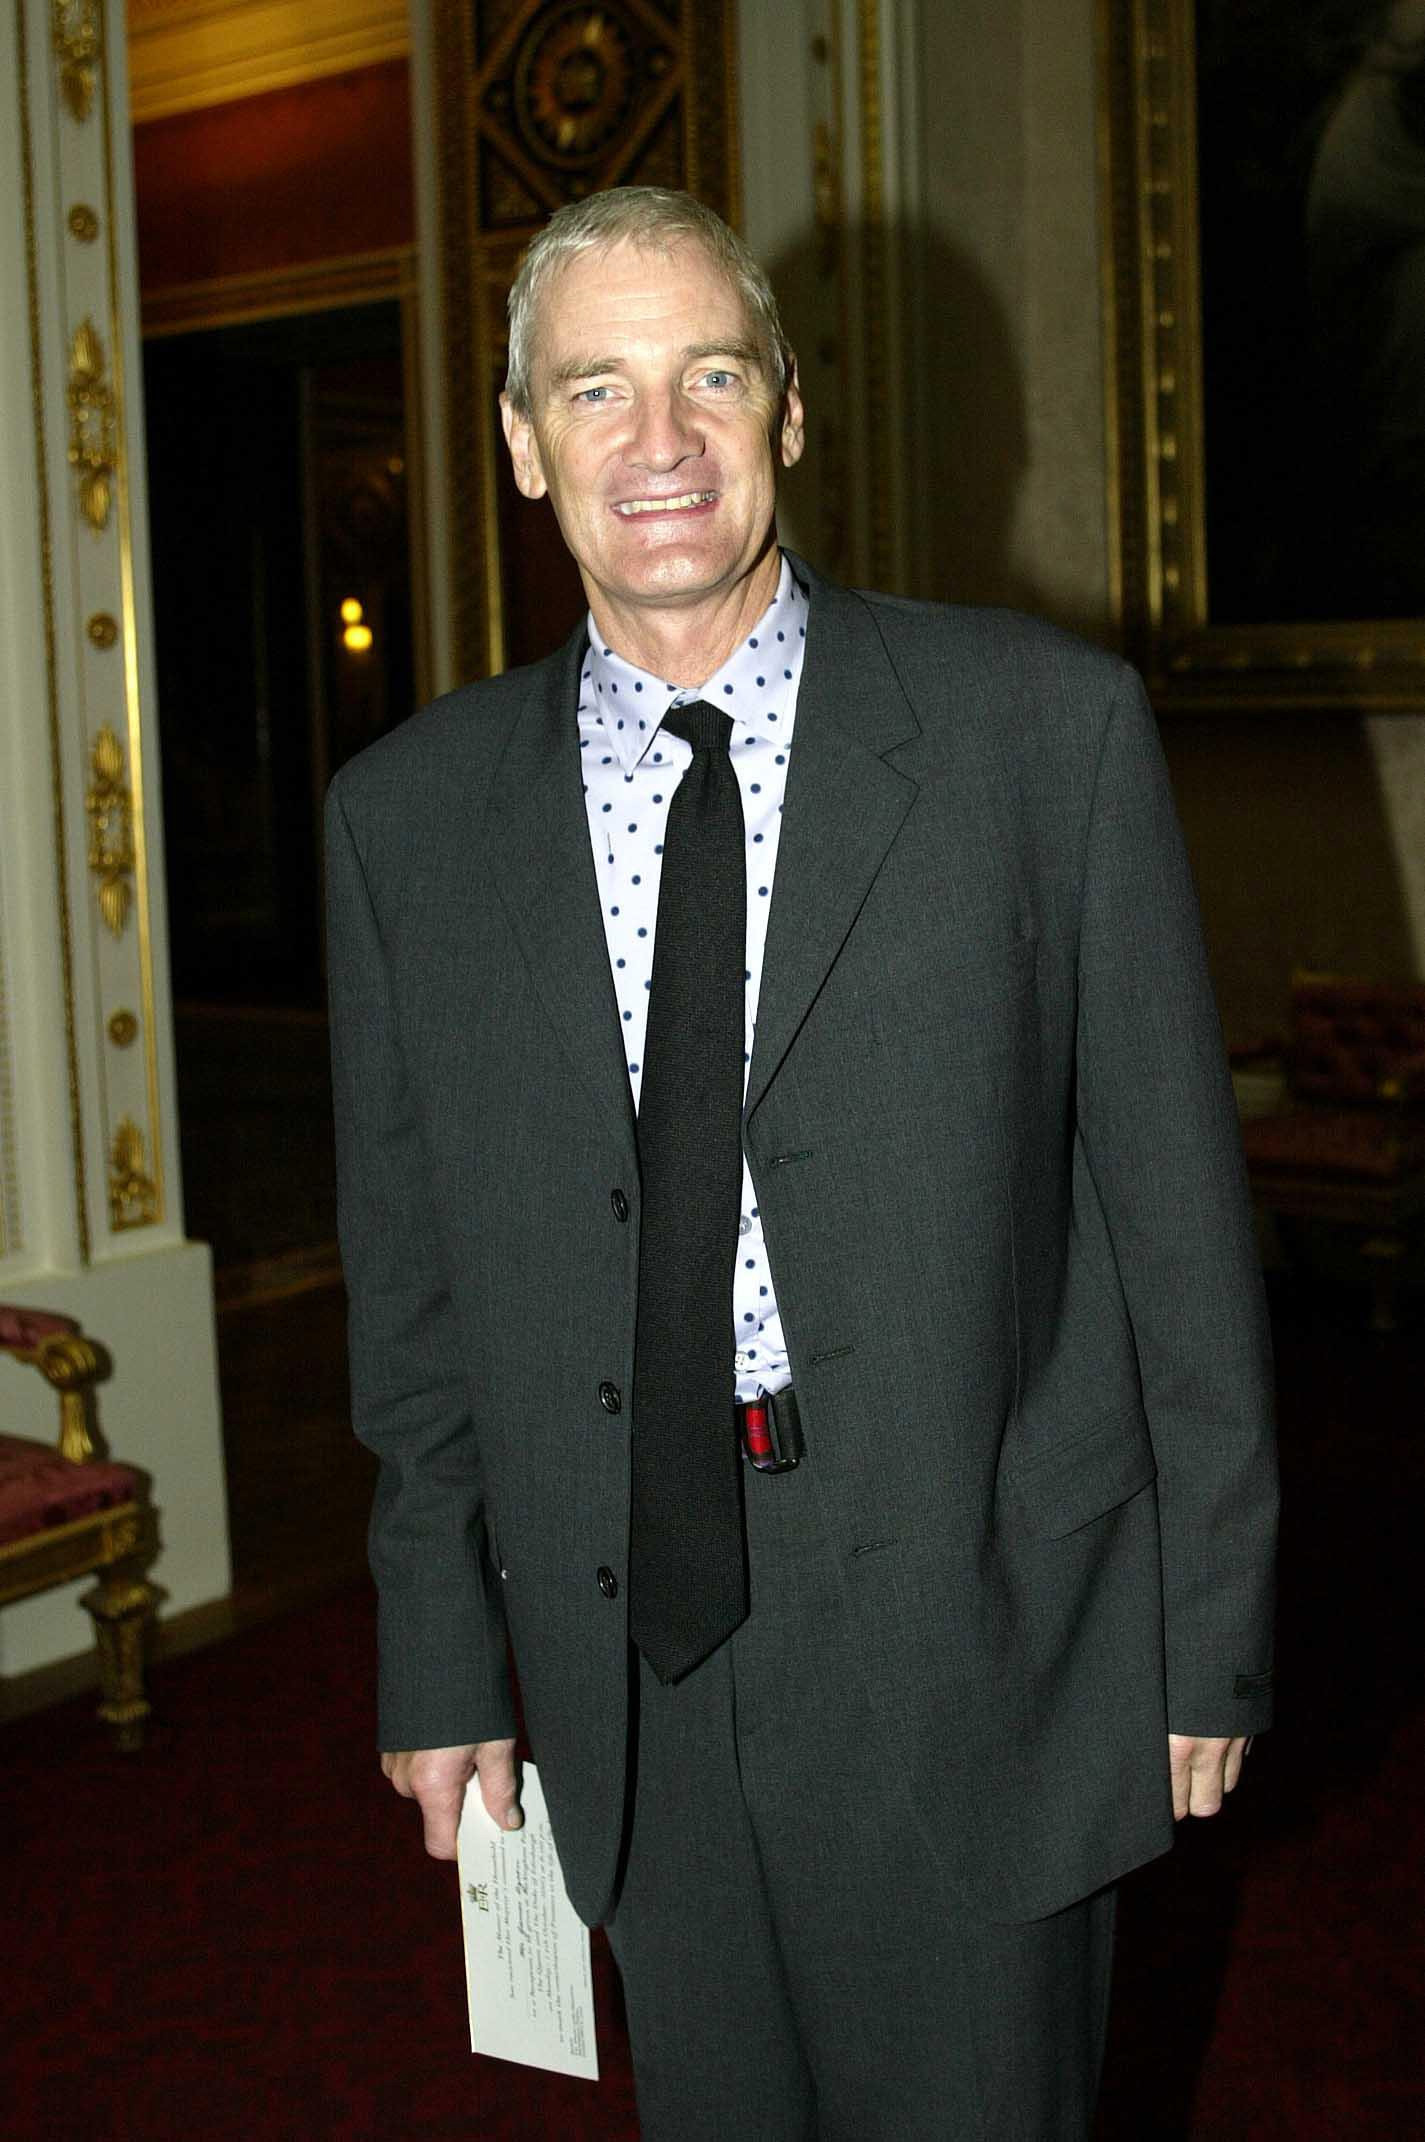 Inventor James Dyson arrives at a reception hosted by Queen Elizabeth II and the Duke of Edinburgh at Buckingham, London, which aims to pay tribute to more than 400 pioneers of British Life.